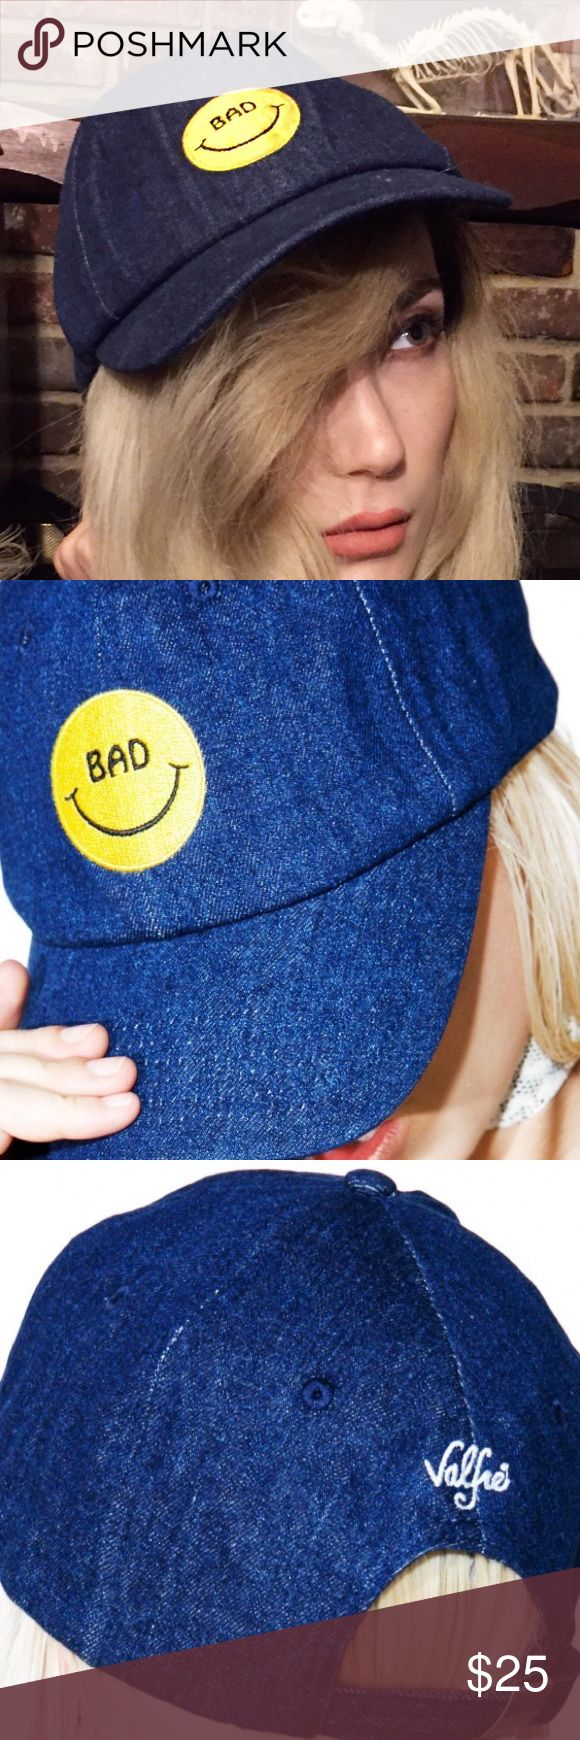 "Valfre Bad denim hat But it feels so good to be bad   This classic fit denim snapback hat features an embroidered smiley face with the text ""BAD"".   Features an embroidered smiley face Adjustable back strap with metal closure  100% cotton One size fits all BAD"".  🍭new and unworn-came without  tags but still have original packaging. Still full price on the valfre site valfre Accessories Hats"